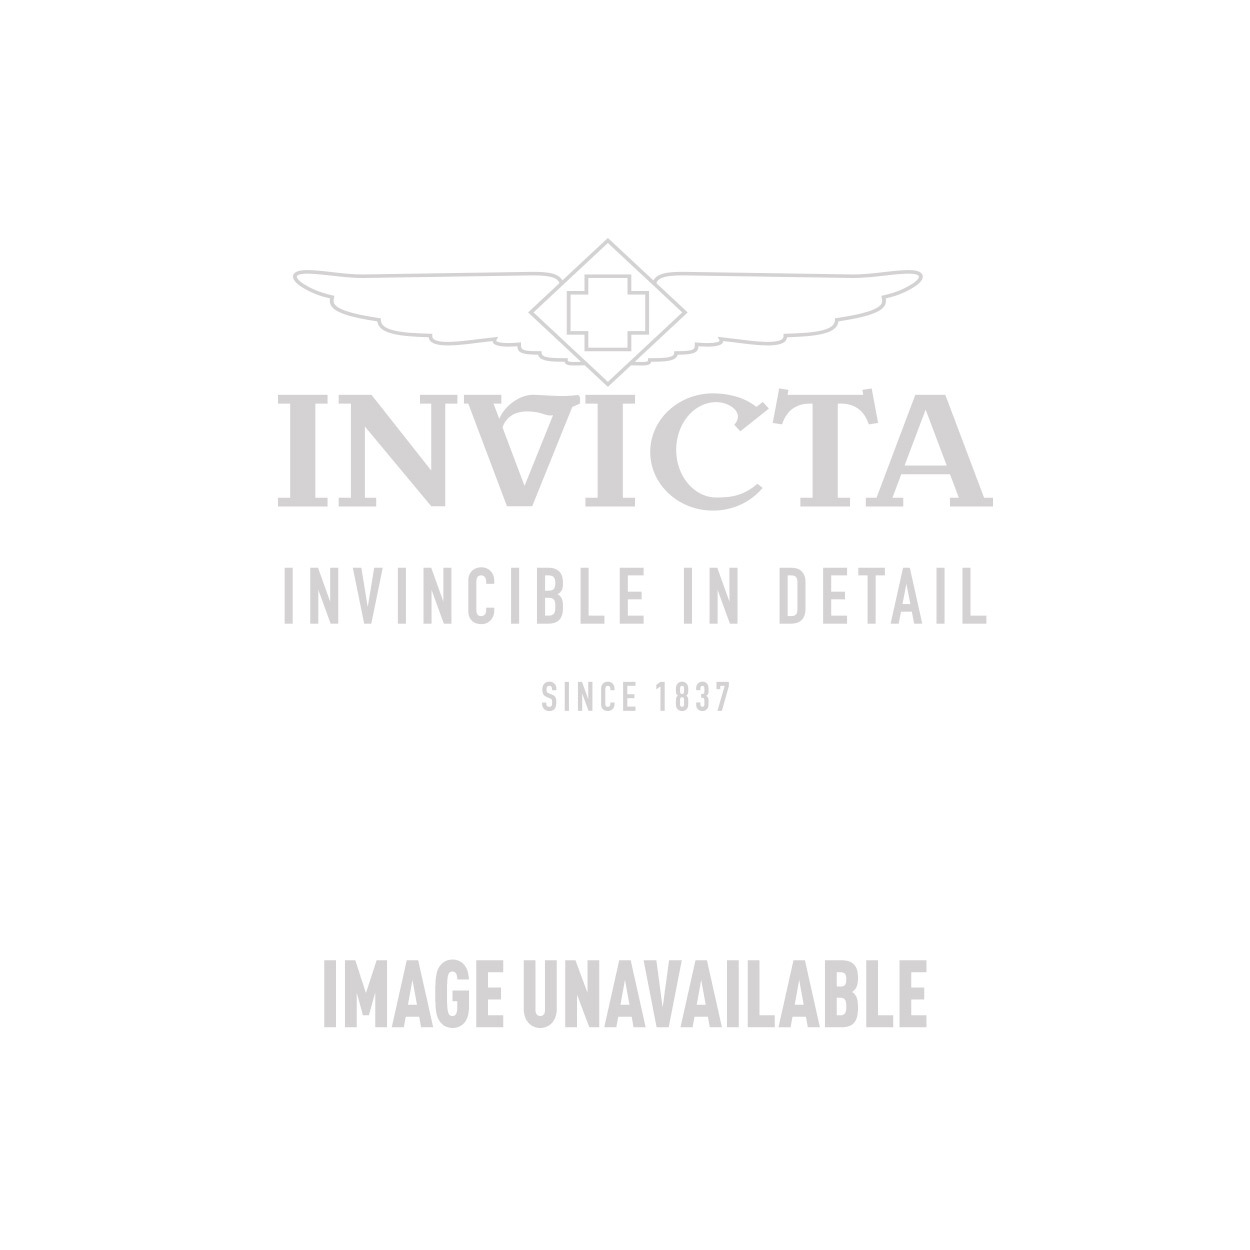 Invicta Specialty Swiss Movement Quartz Watch - Black case with Black tone Stainless Steel band - Model 0367